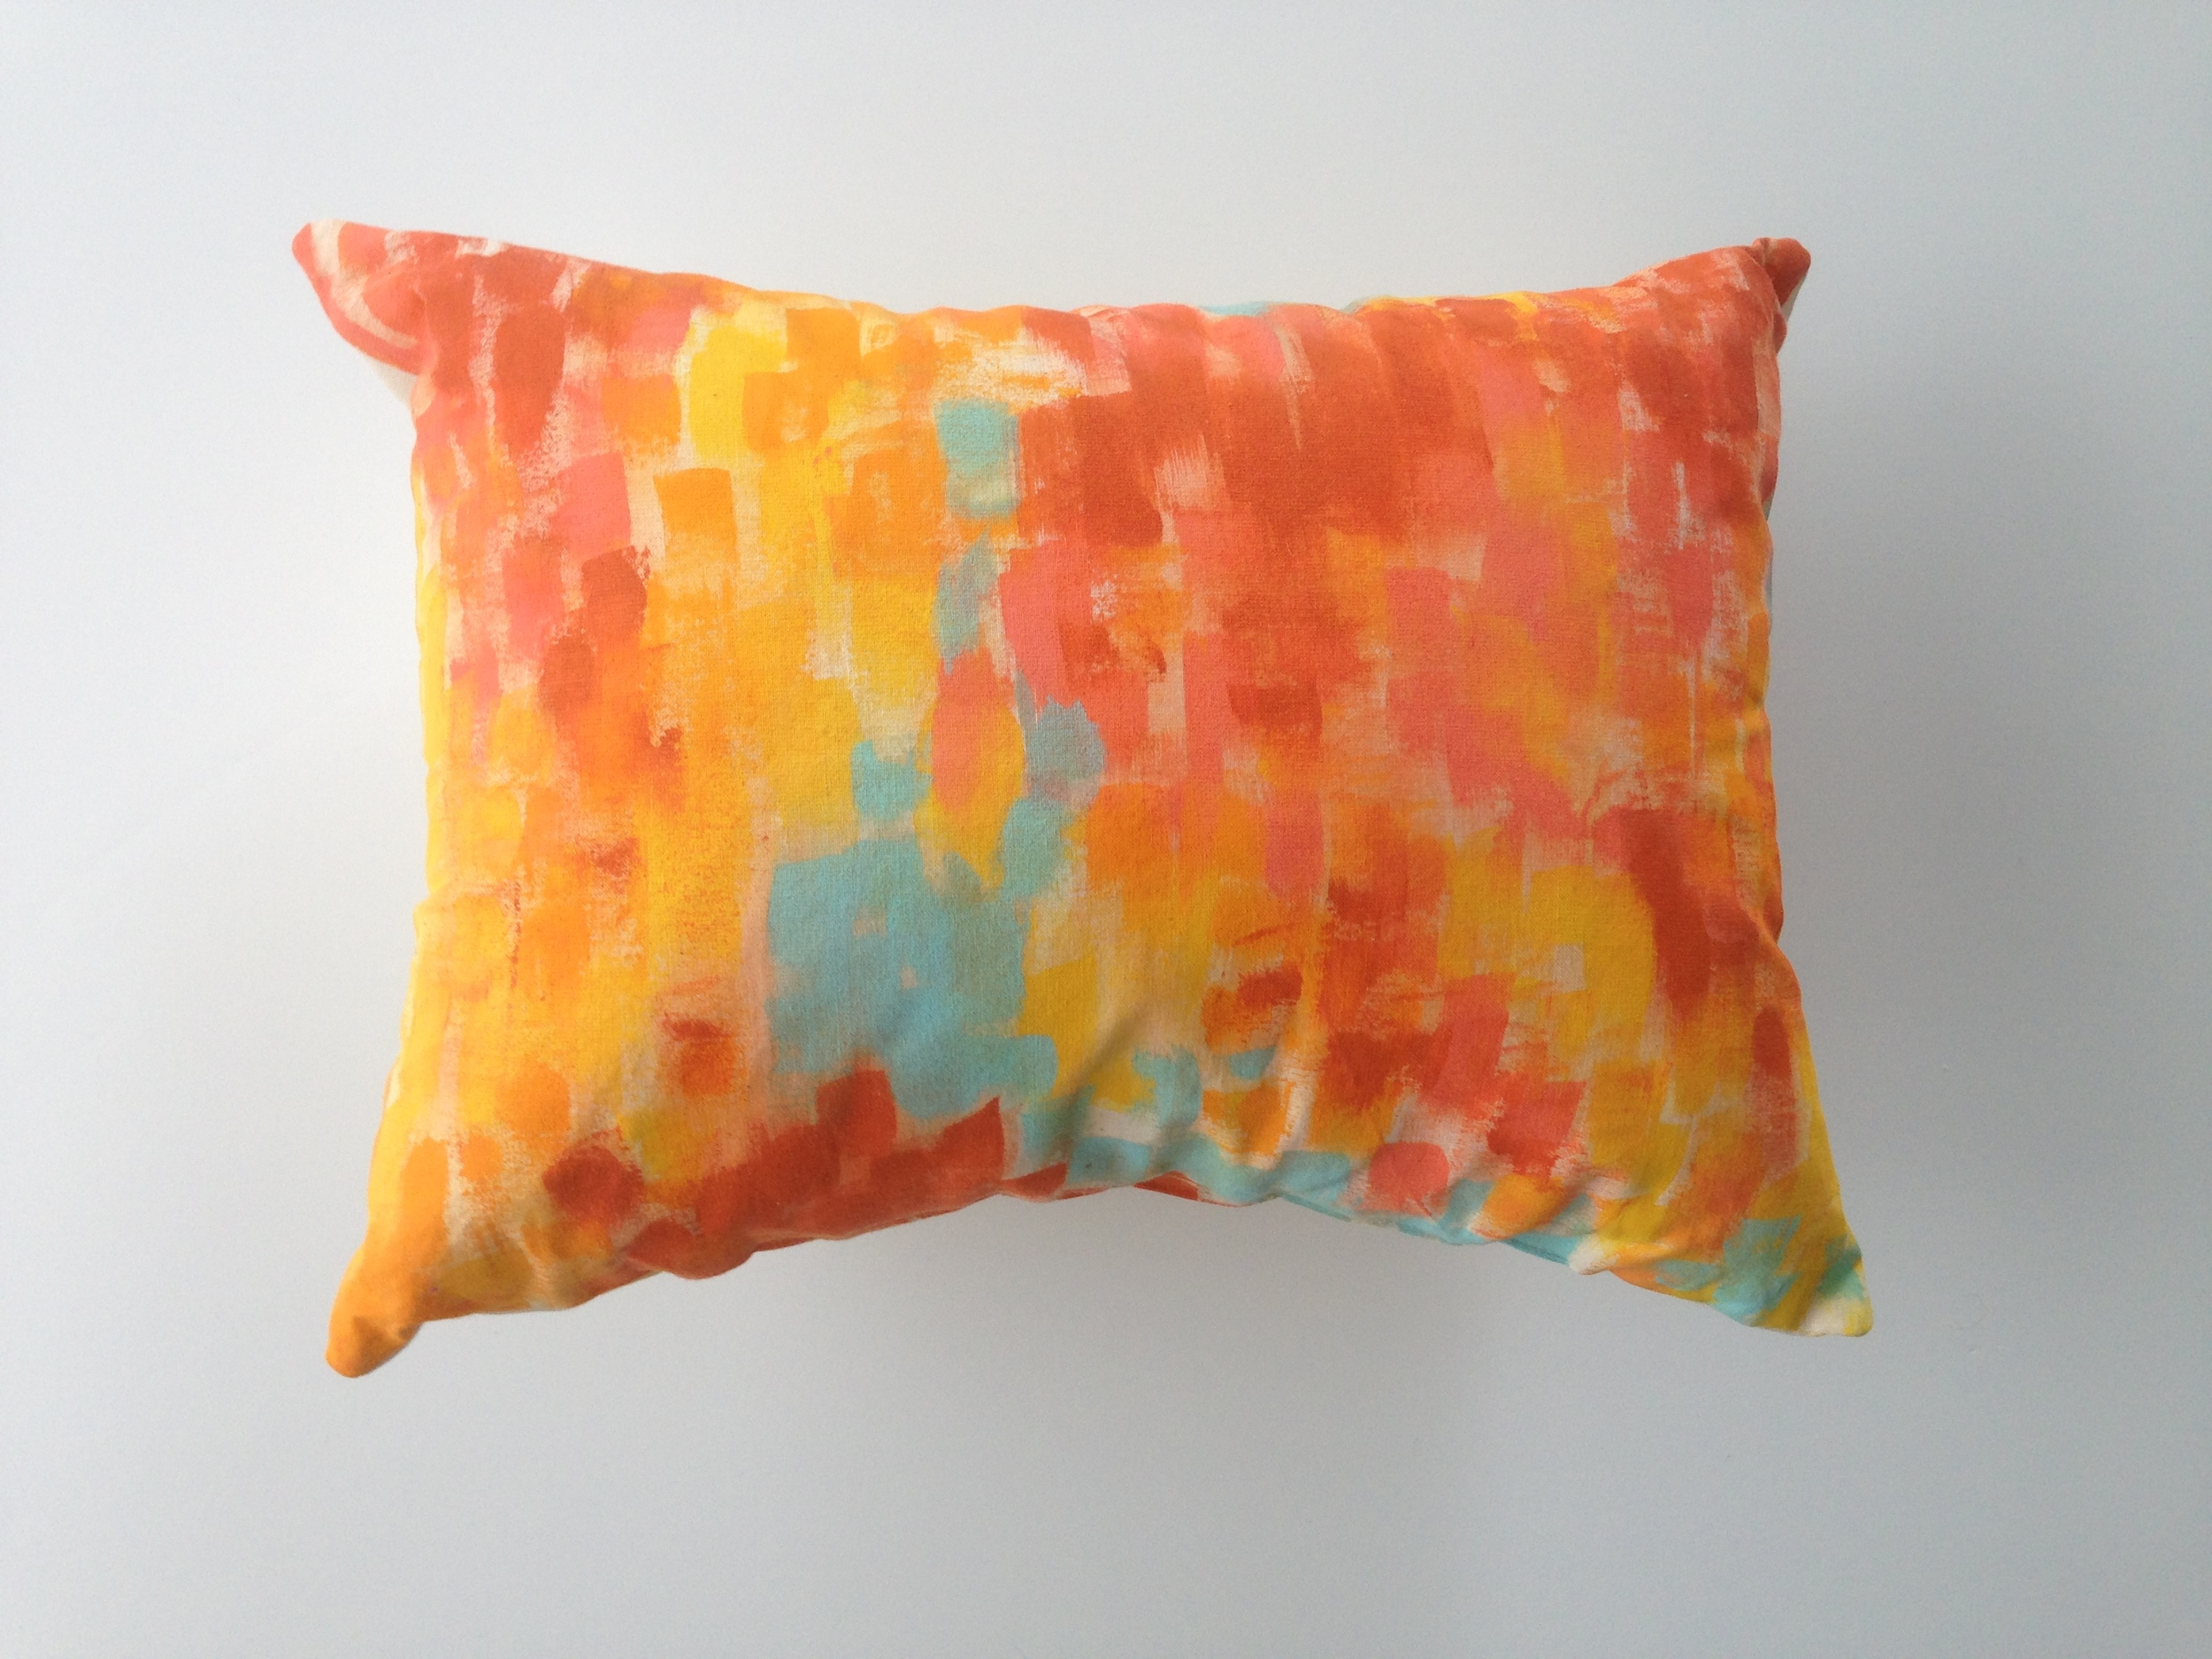 Handpainted Pillows    Created for Michaels Makers Summit   Alison Events